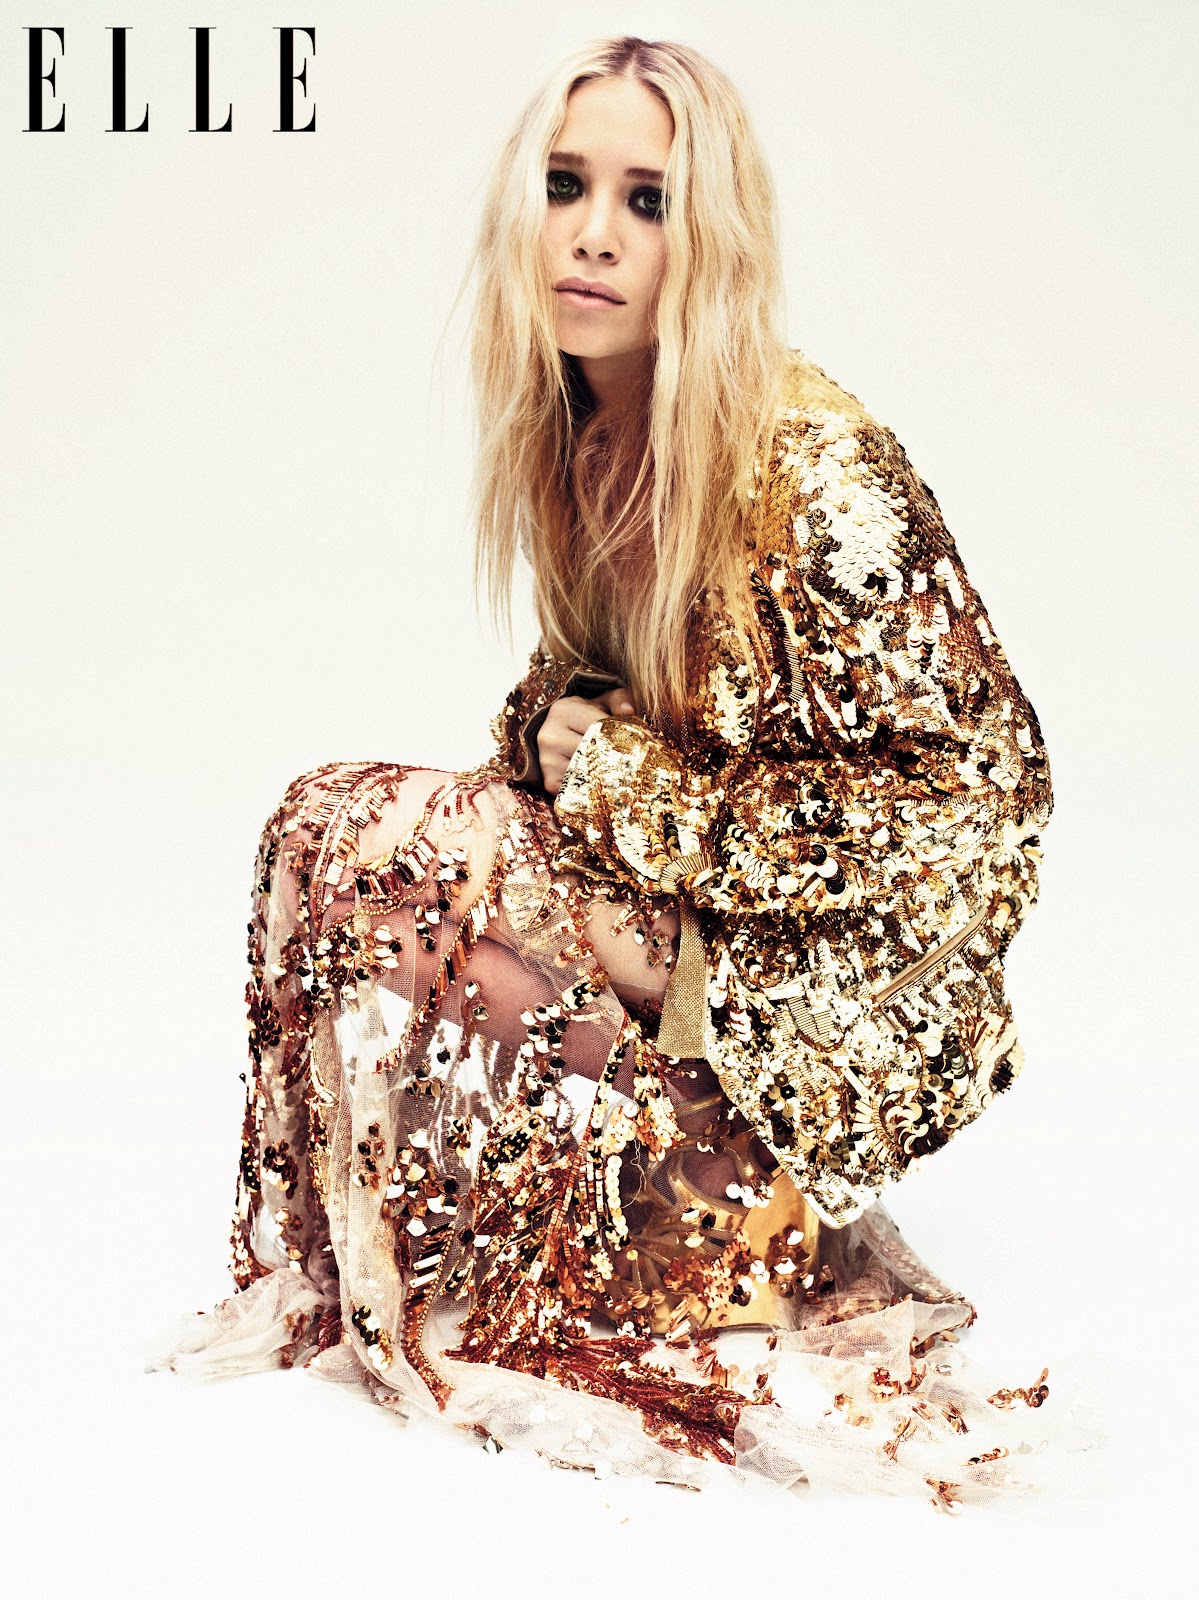 http://3.bp.blogspot.com/-fYHIm4E3PVo/T1kq_o3UYnI/AAAAAAAAR98/ULoR4Ml_B1k/s1600/Mary-Kate+Olsen+for+ELLE+UK.jpg